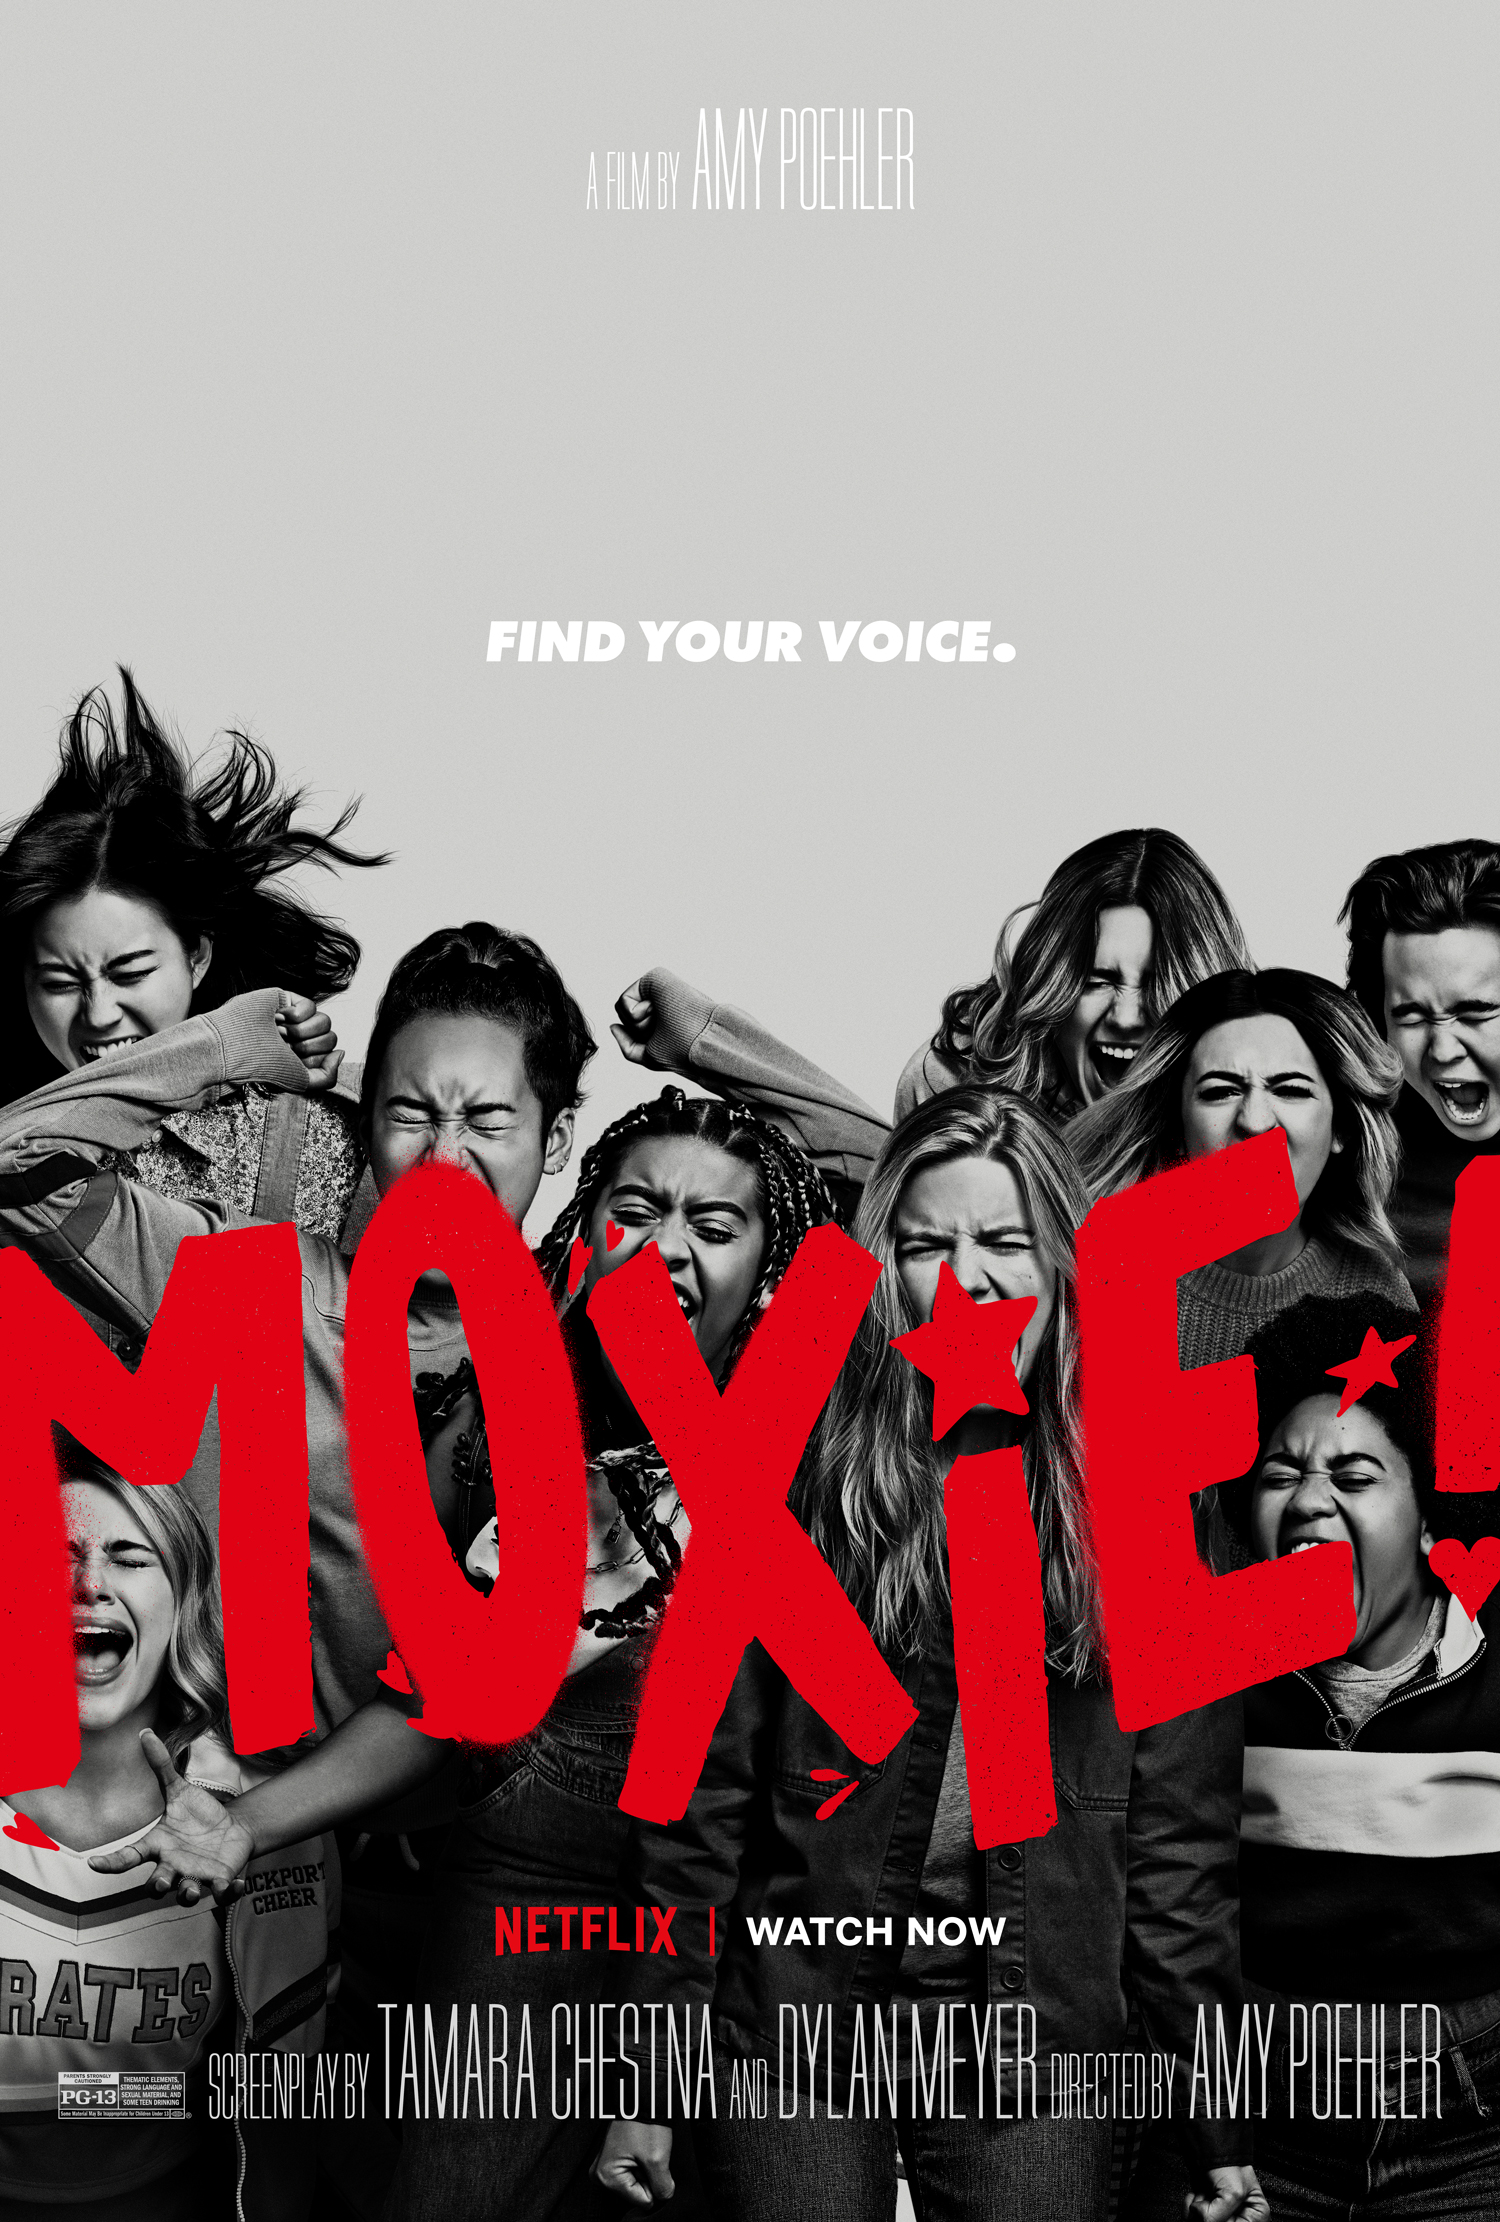 Welcome to the Revolution Moxie! Advanced Review